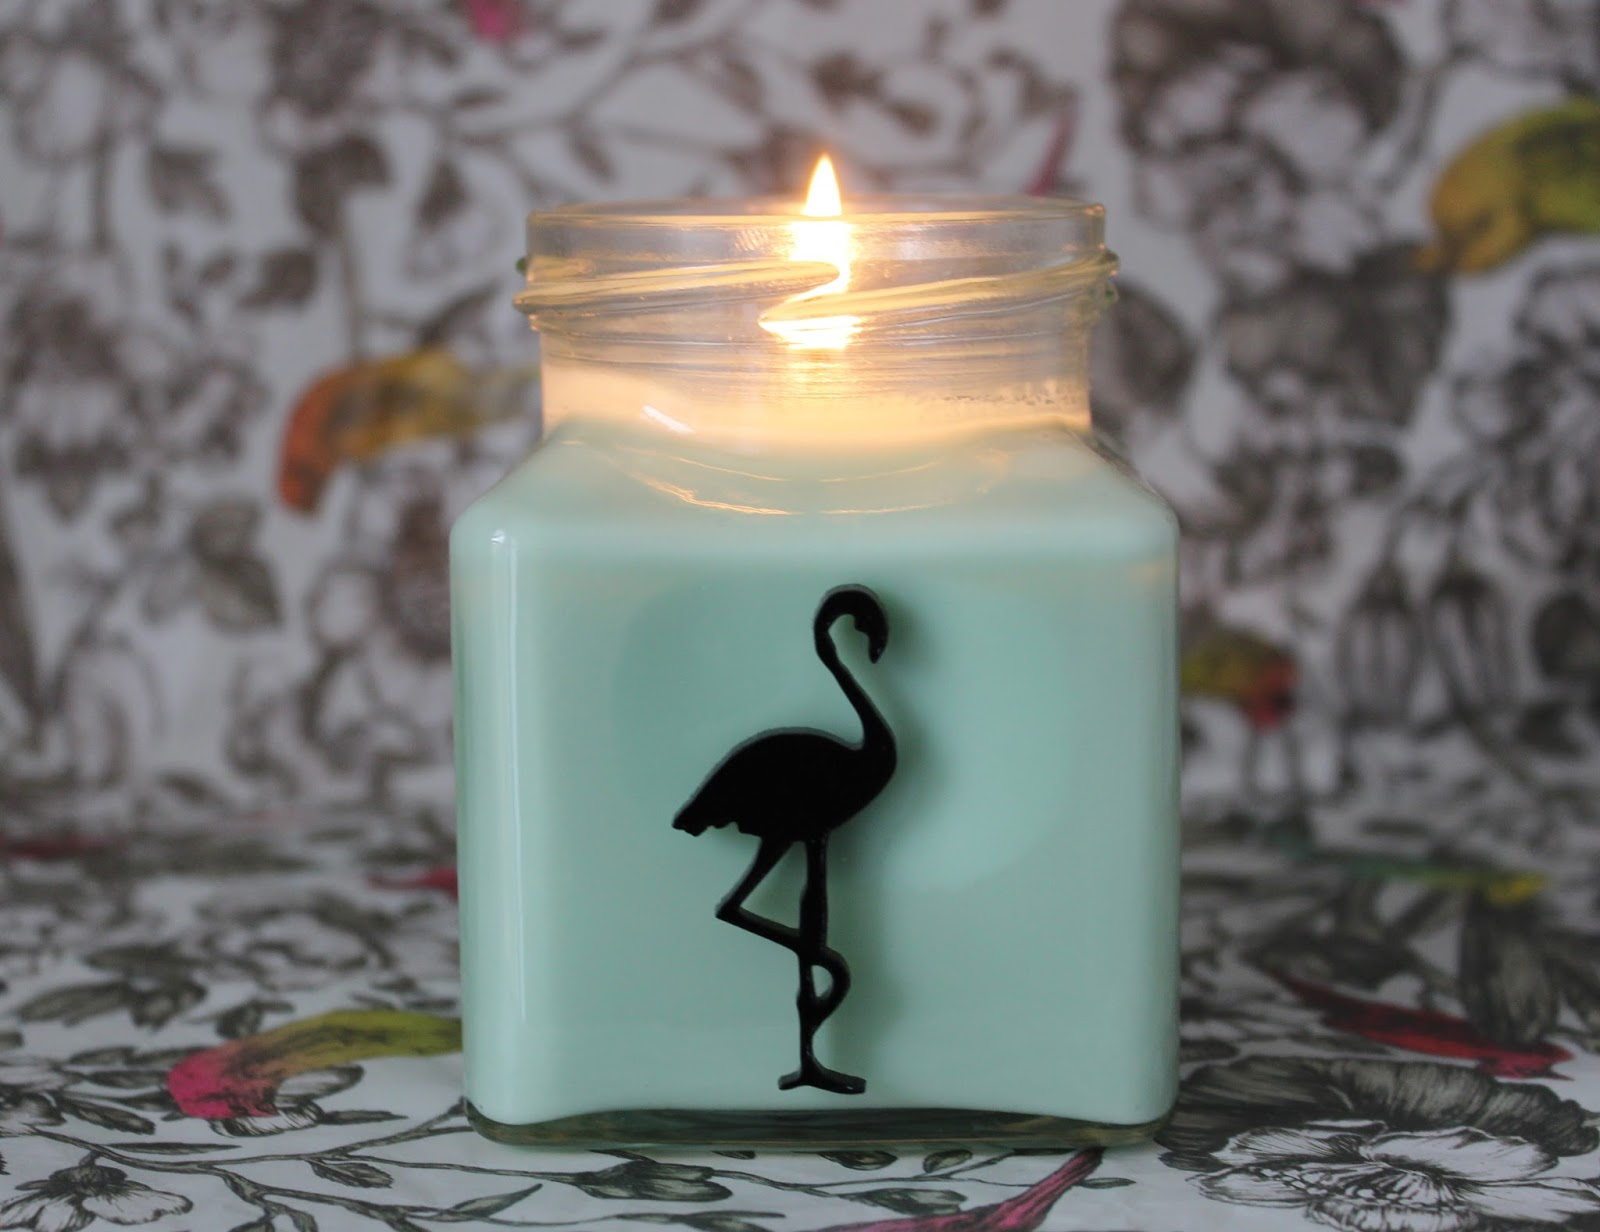 Flamingo Candles Cinnamon appleberry candle